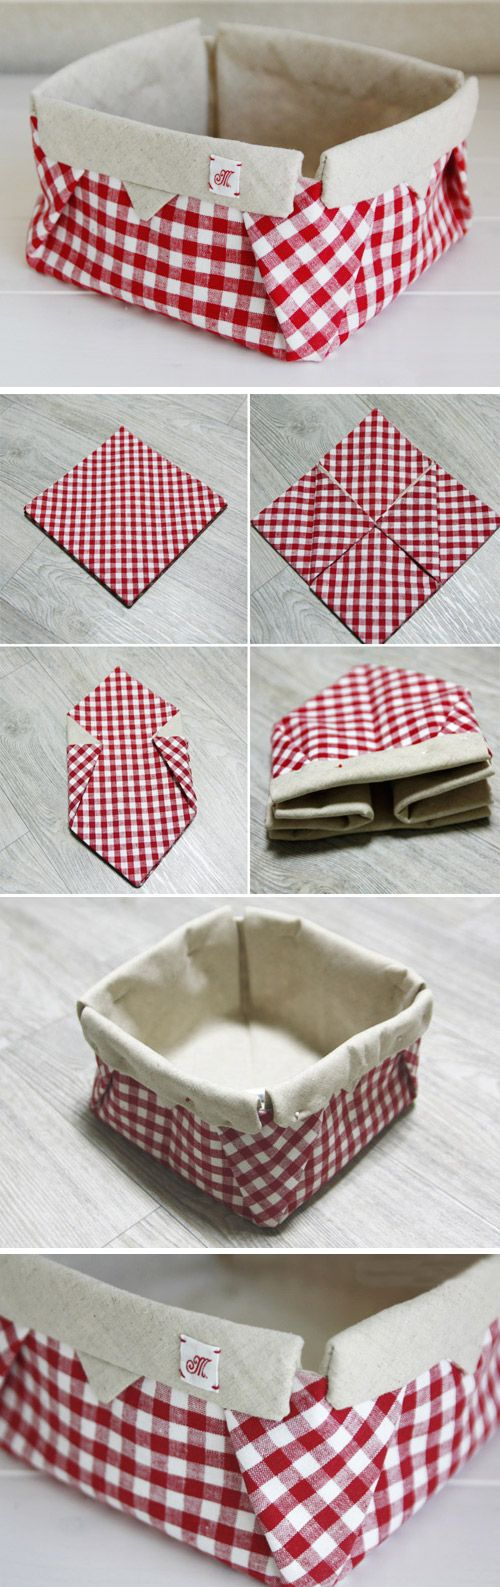 How-To: Fabric Origami Box. DIY tutorial fabric basket. www.handmadiya.co...